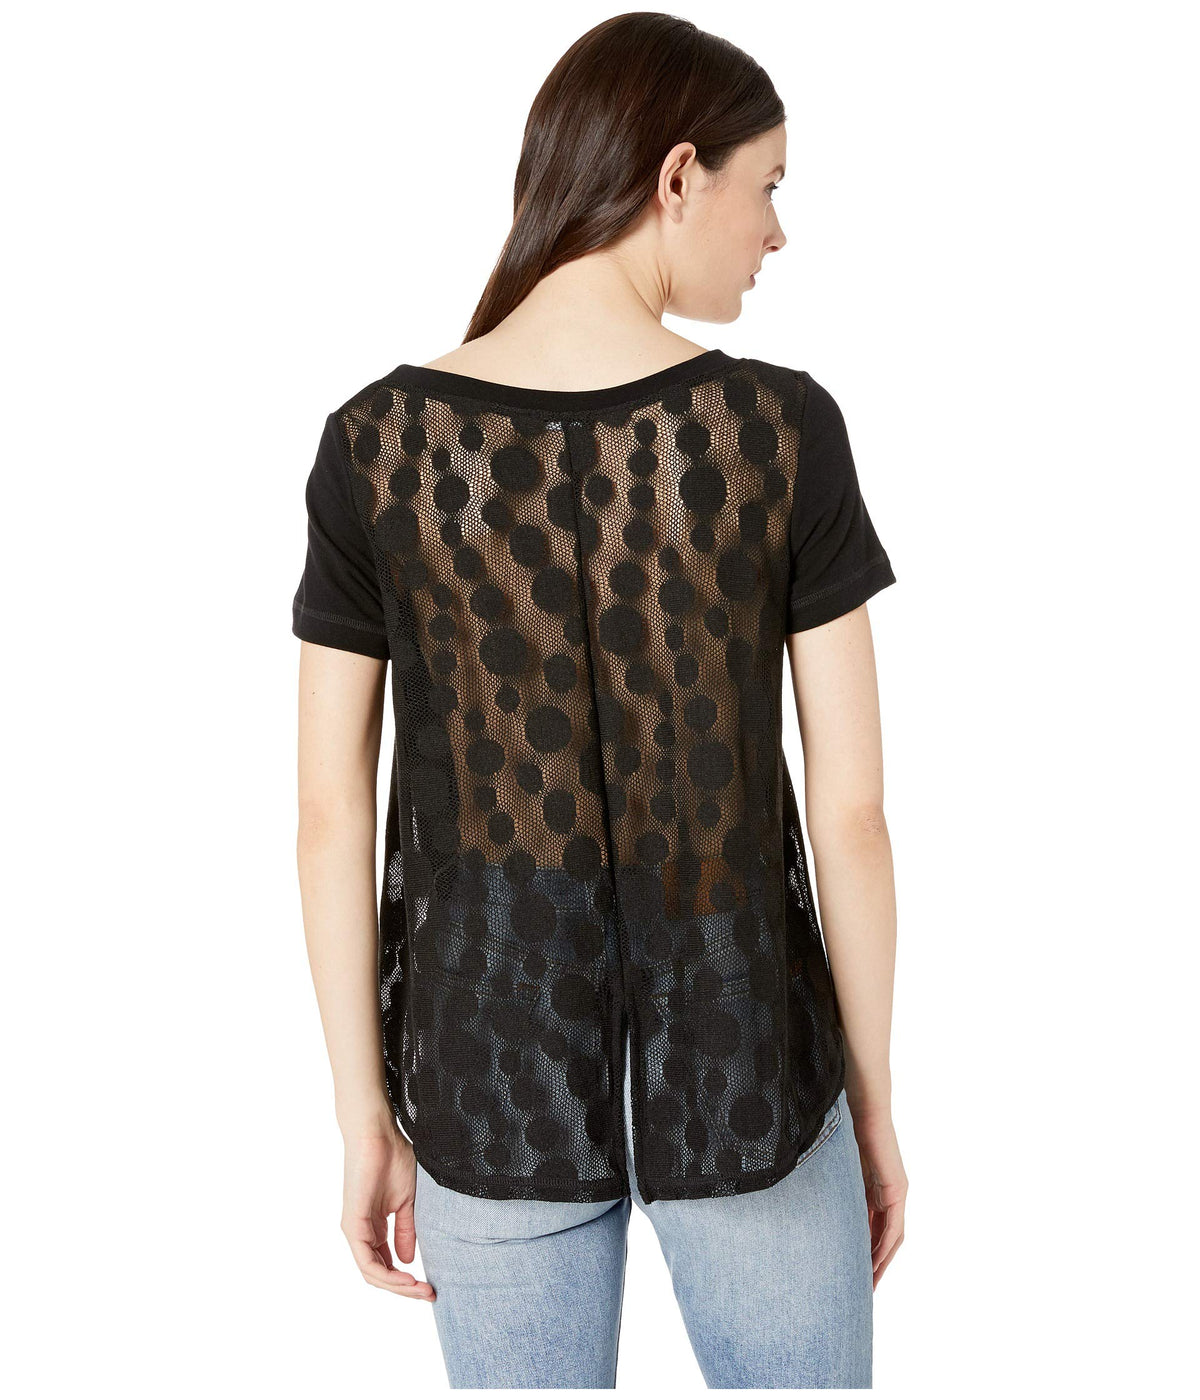 Lace Back Short Sleeve Top